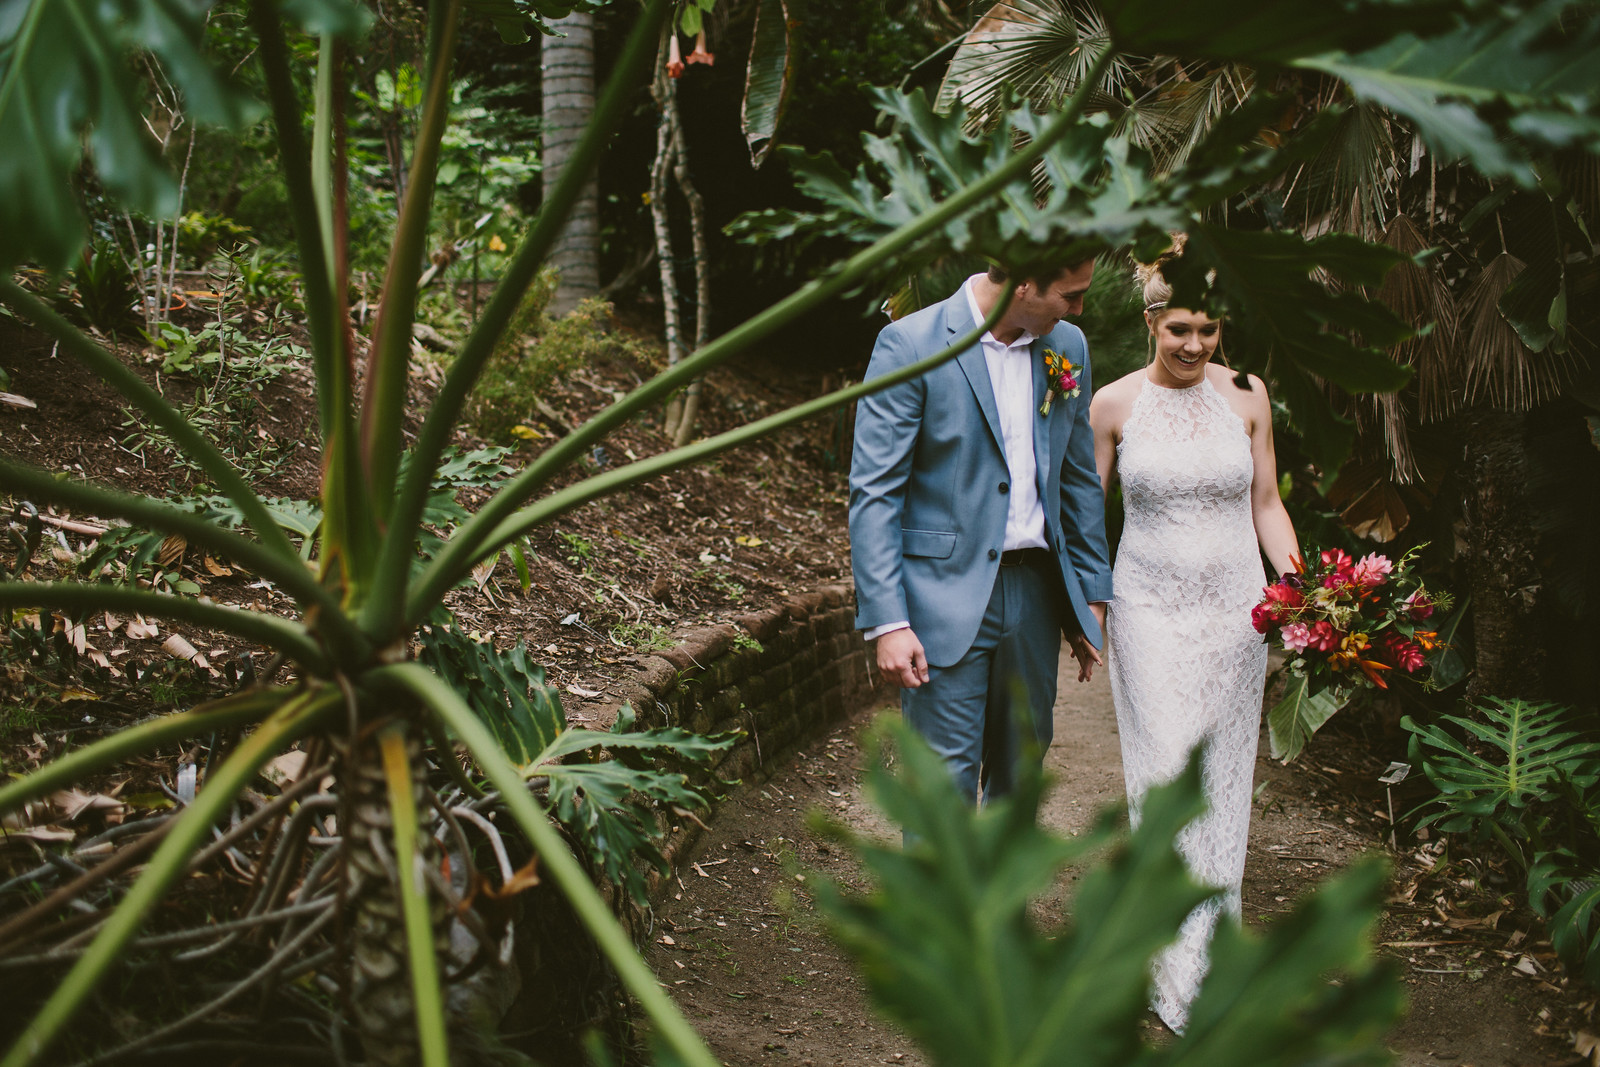 sandiego-botanic-garden-wedding-8.jpg